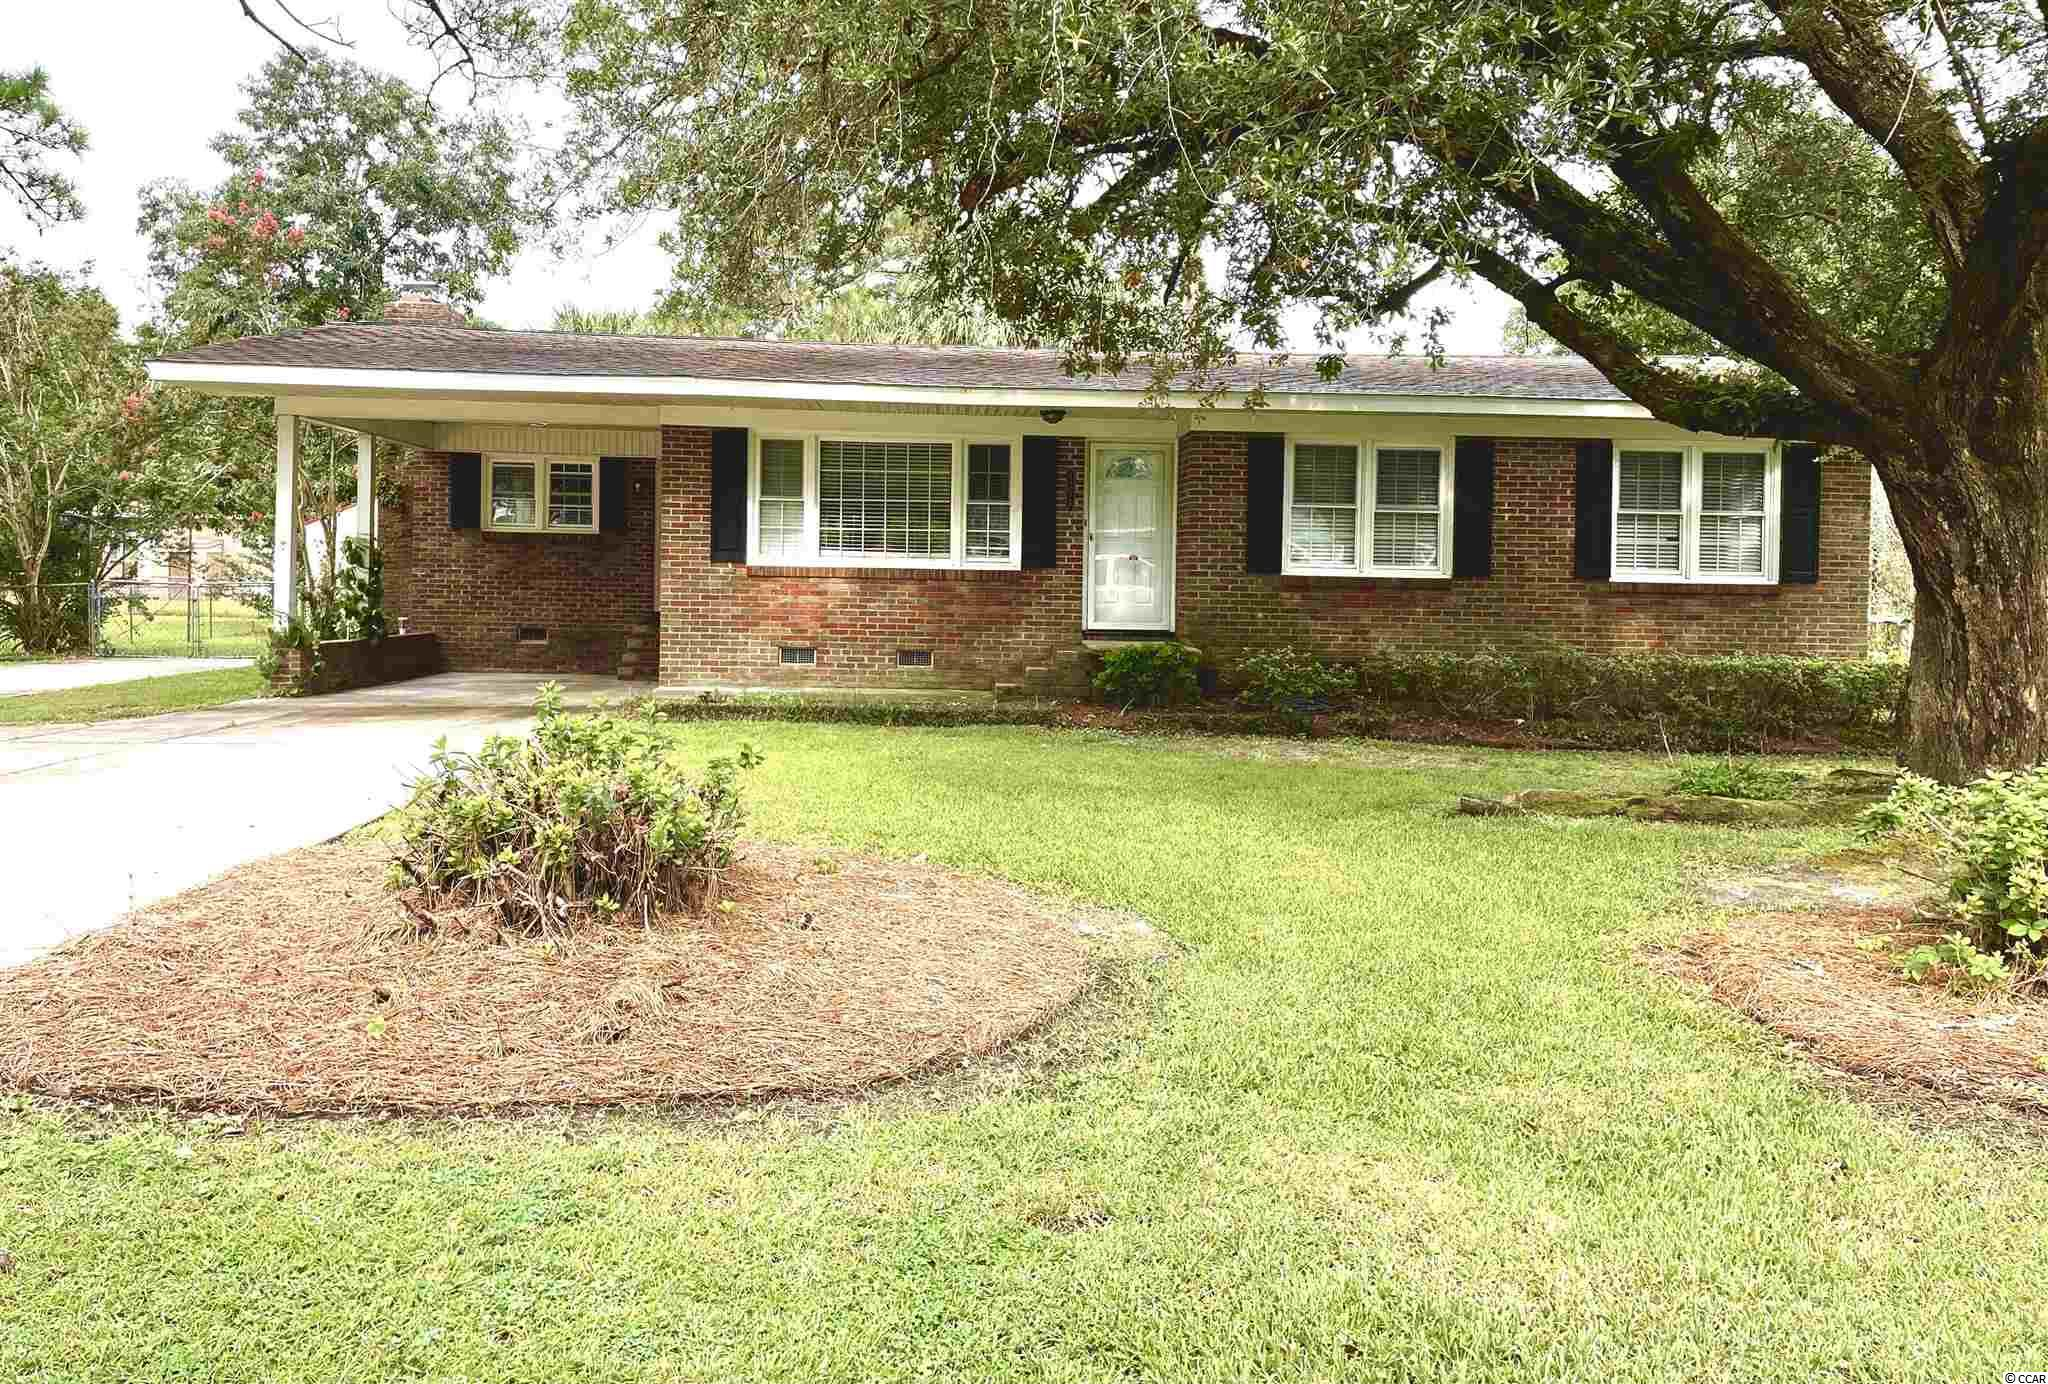 Nice brick home with fenced in backyard!  Hardwood floors throughout except in the kitchen and bathrooms. Large kitchen with updated cabinets and countertops.   No HOA!  Plenty of parking for a boat or RV.